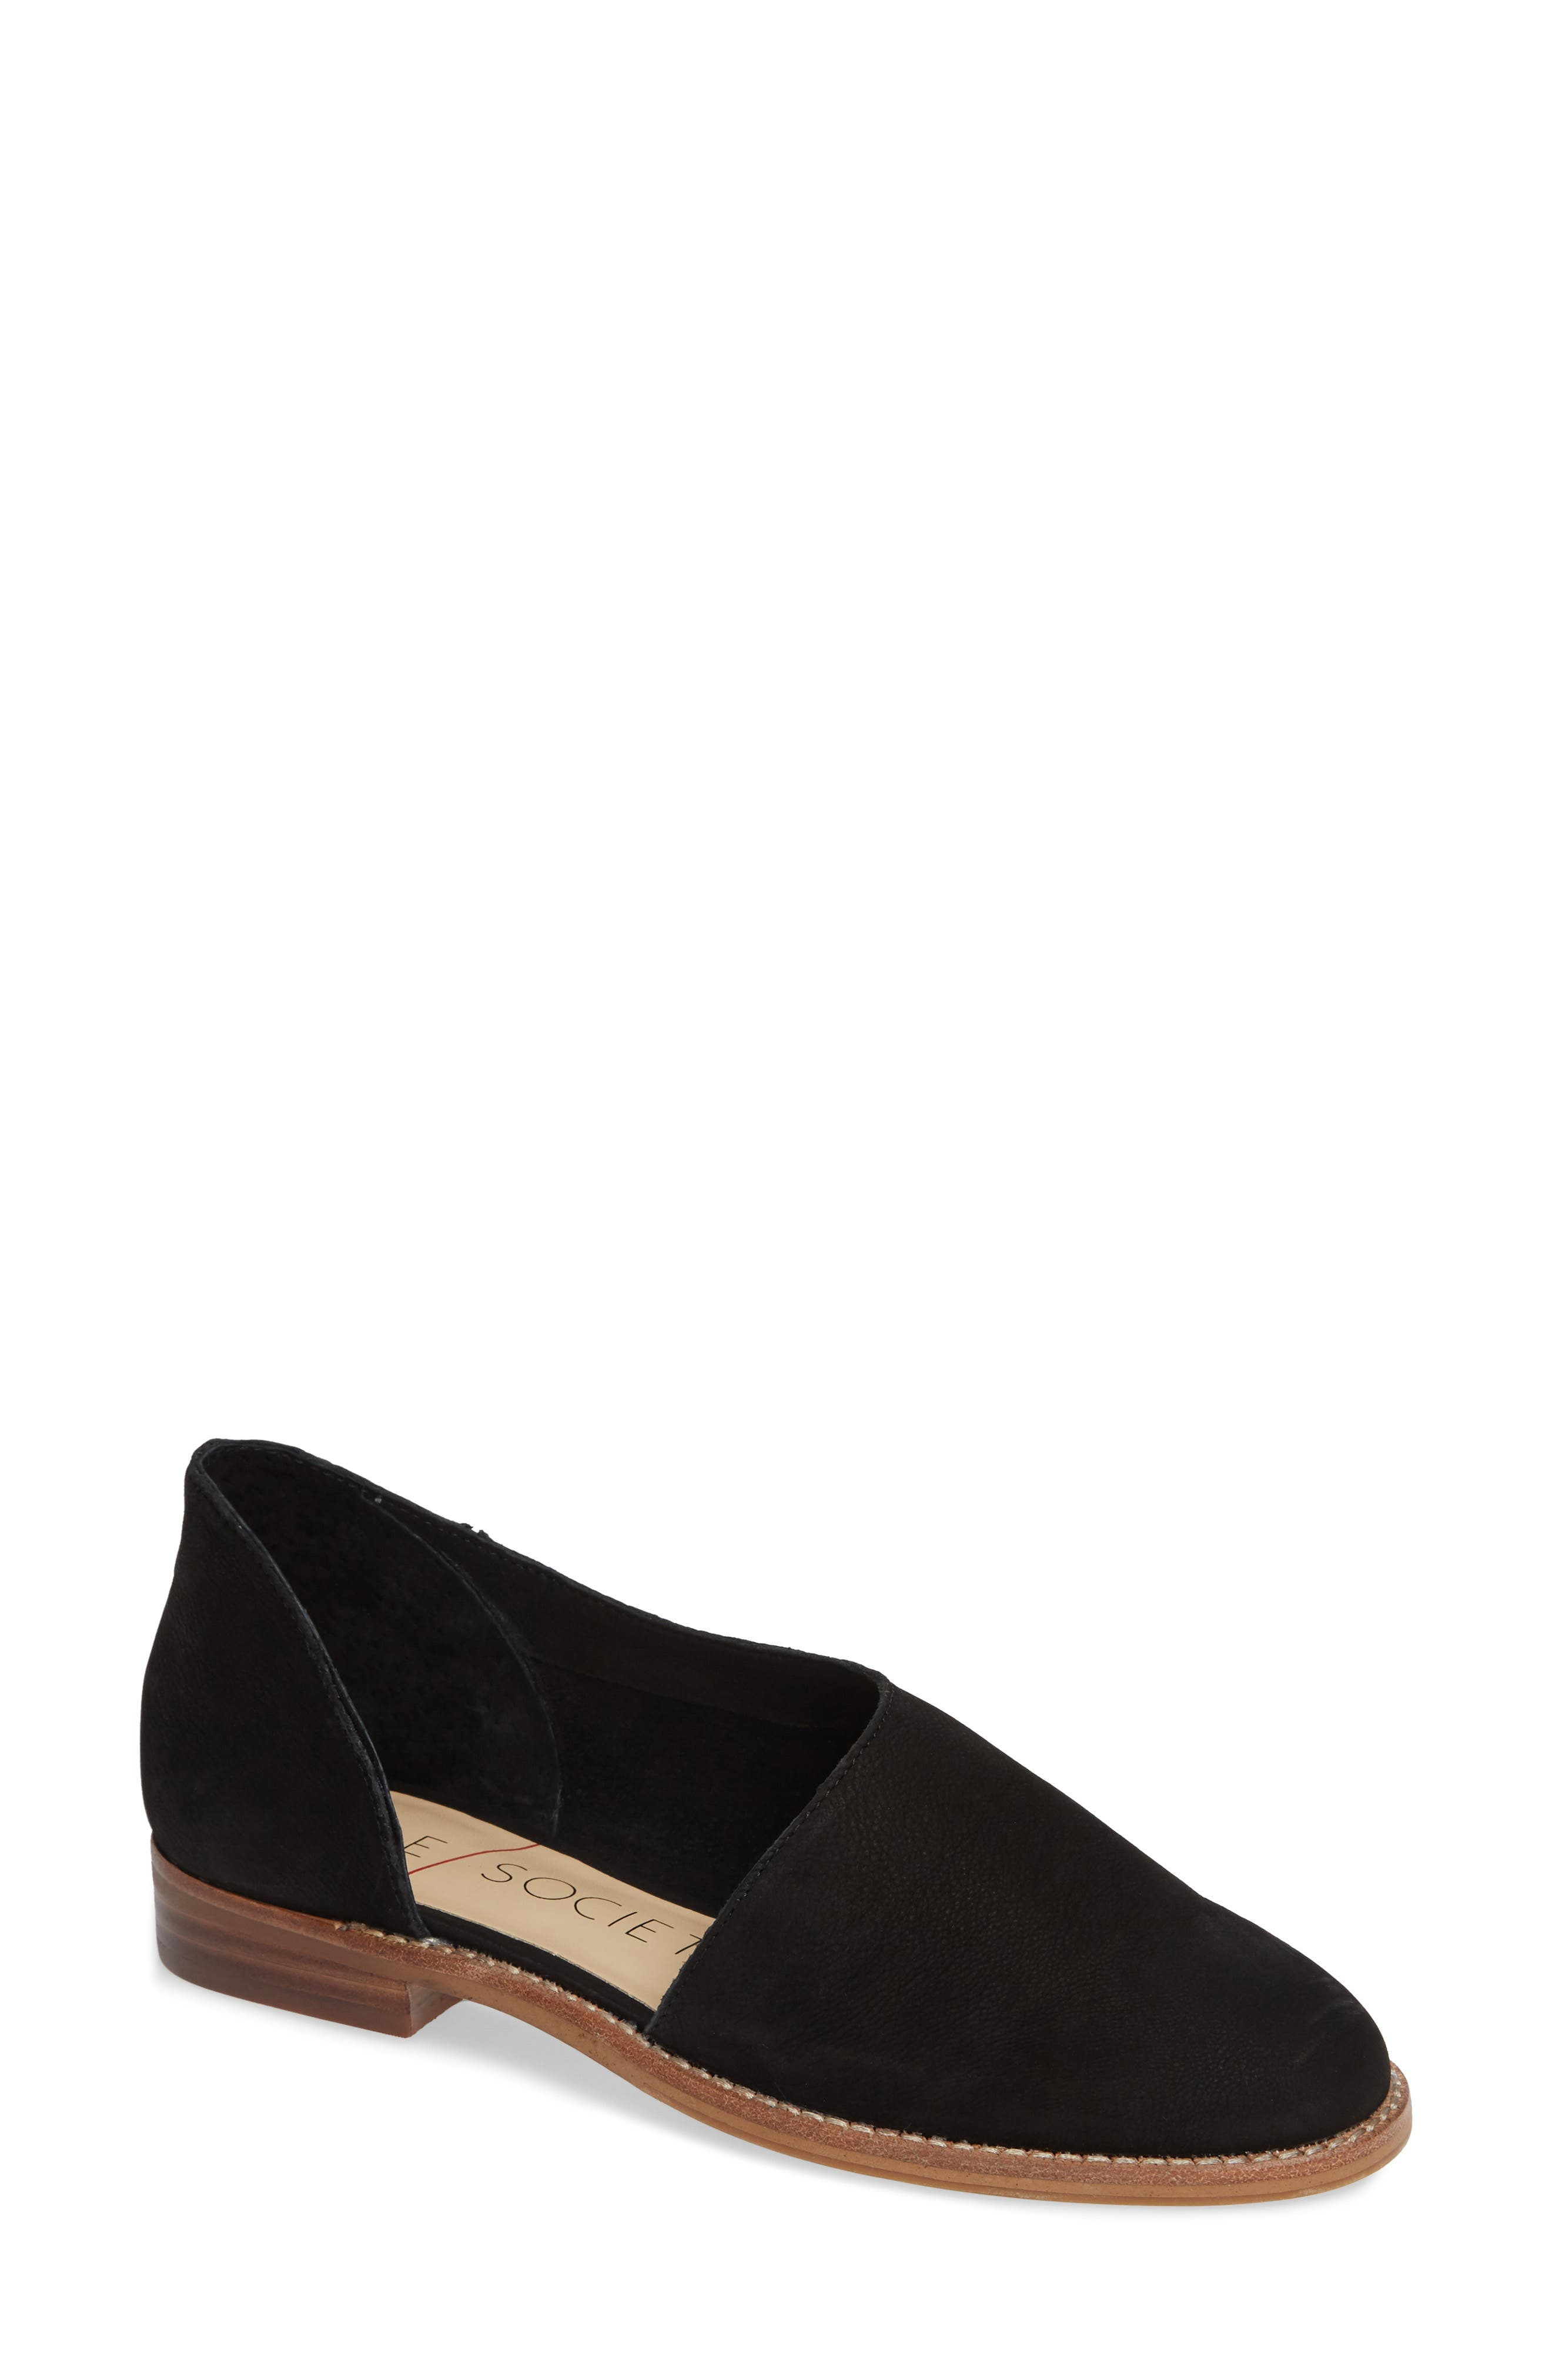 Betianne Flat,                         Main,                         color, BLACK NUBUCK